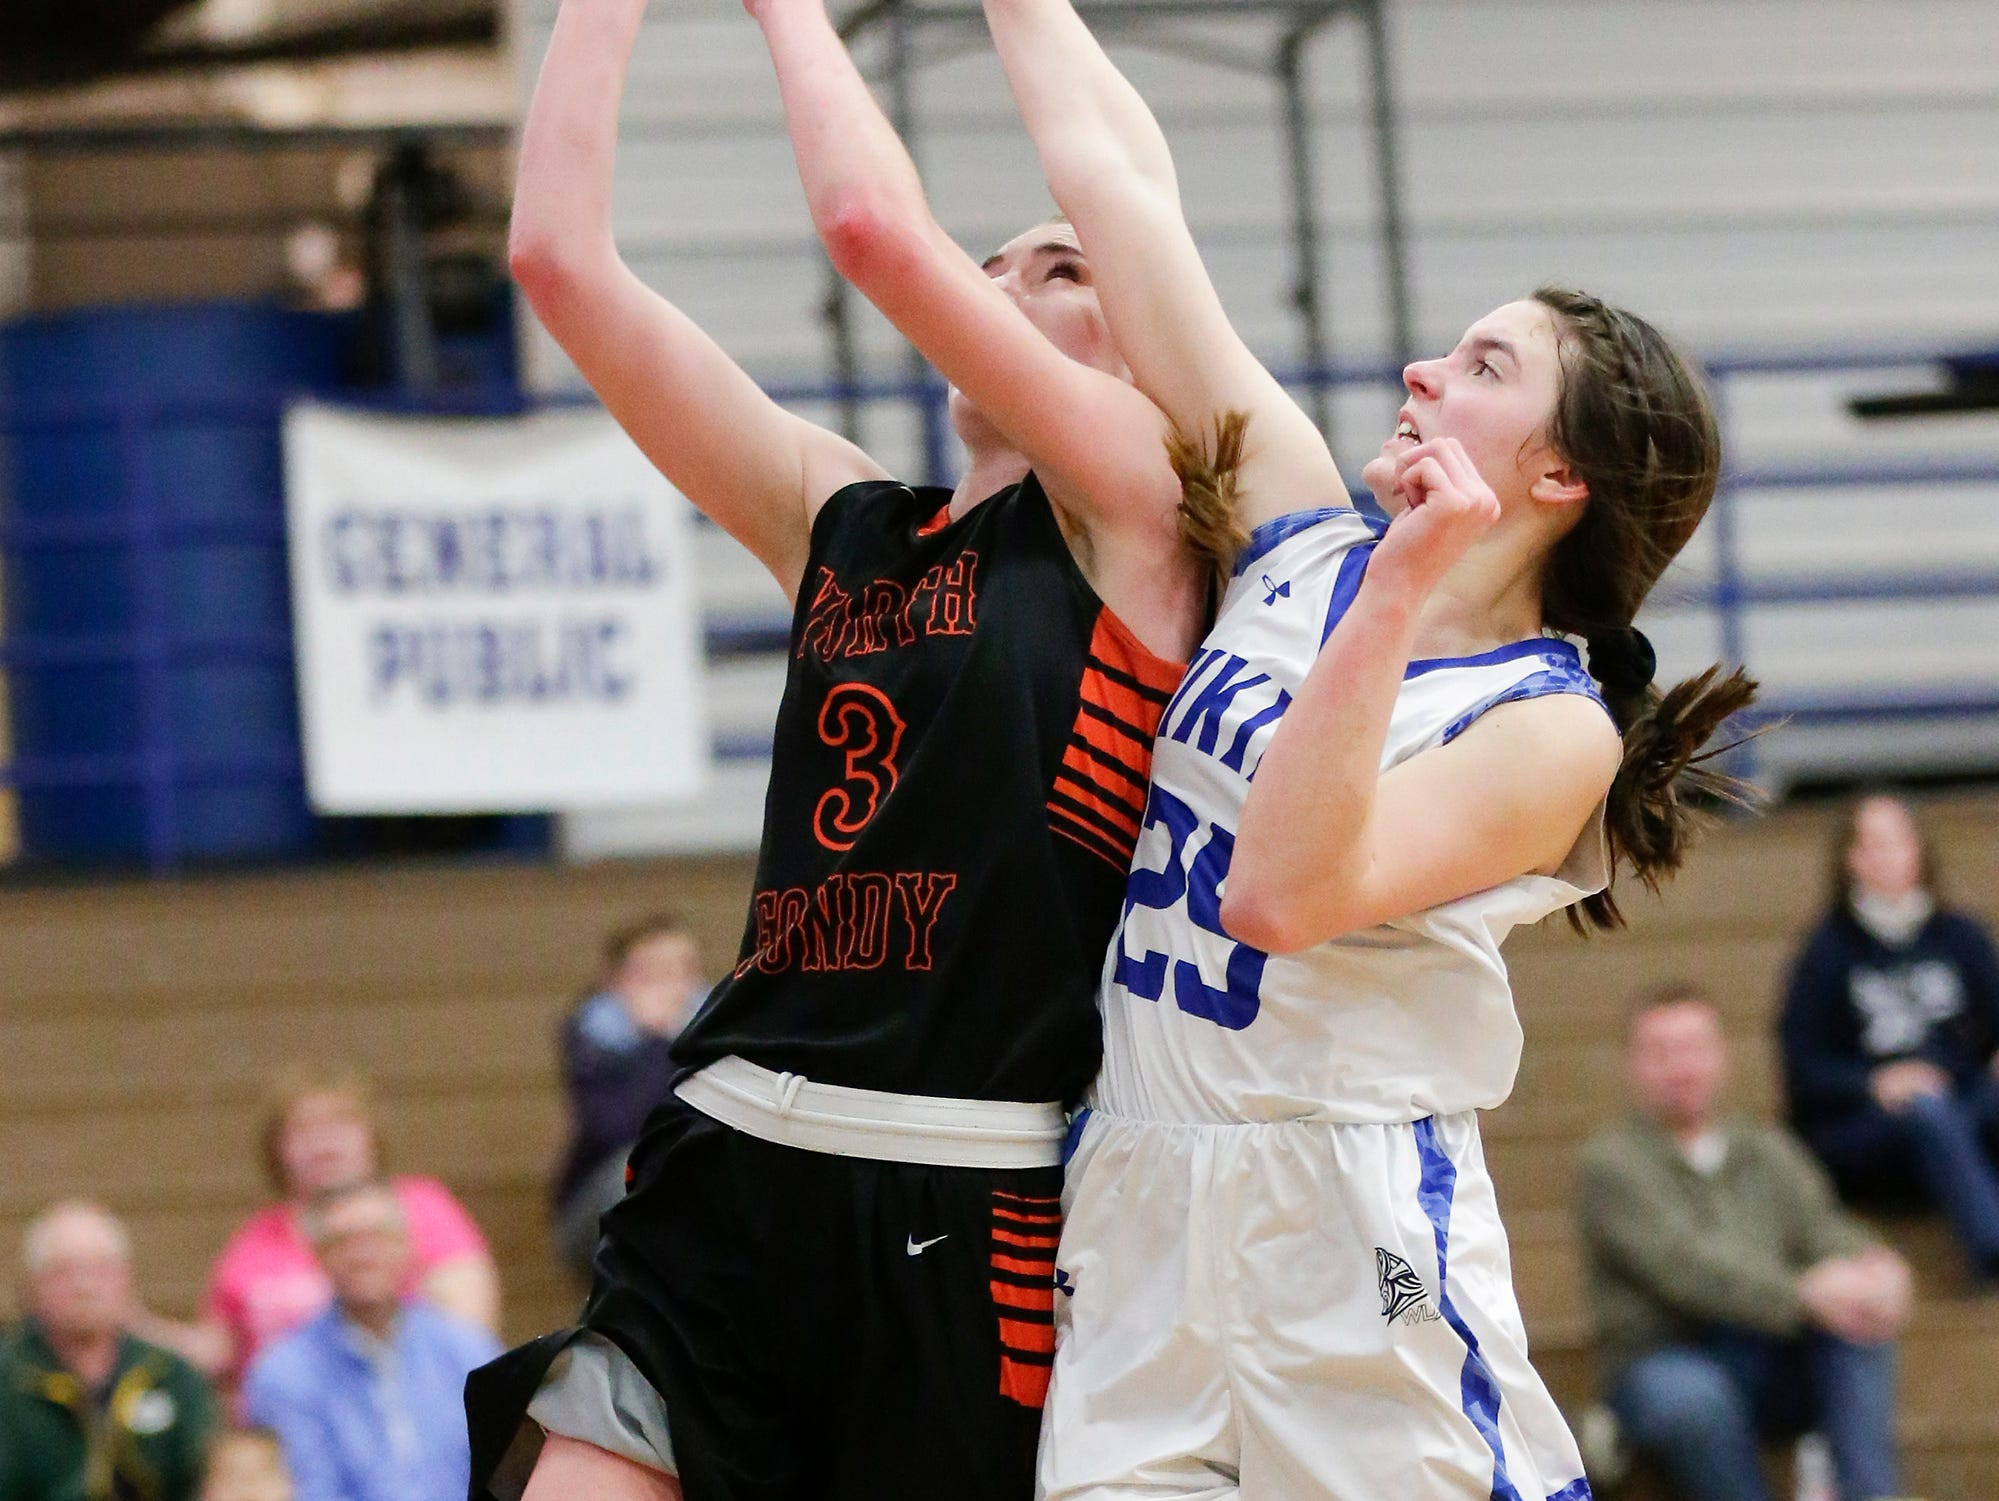 North Fond du Lac High School girls basketball's Rebecca Kingsland makes this basket despite being fouled by Winnebago Lutheran Academy's Geneva Hewitt January 10, 2019 during their game in Fond du Lac. Doug Raflik/USA TODAY NETWORK-Wisconsin